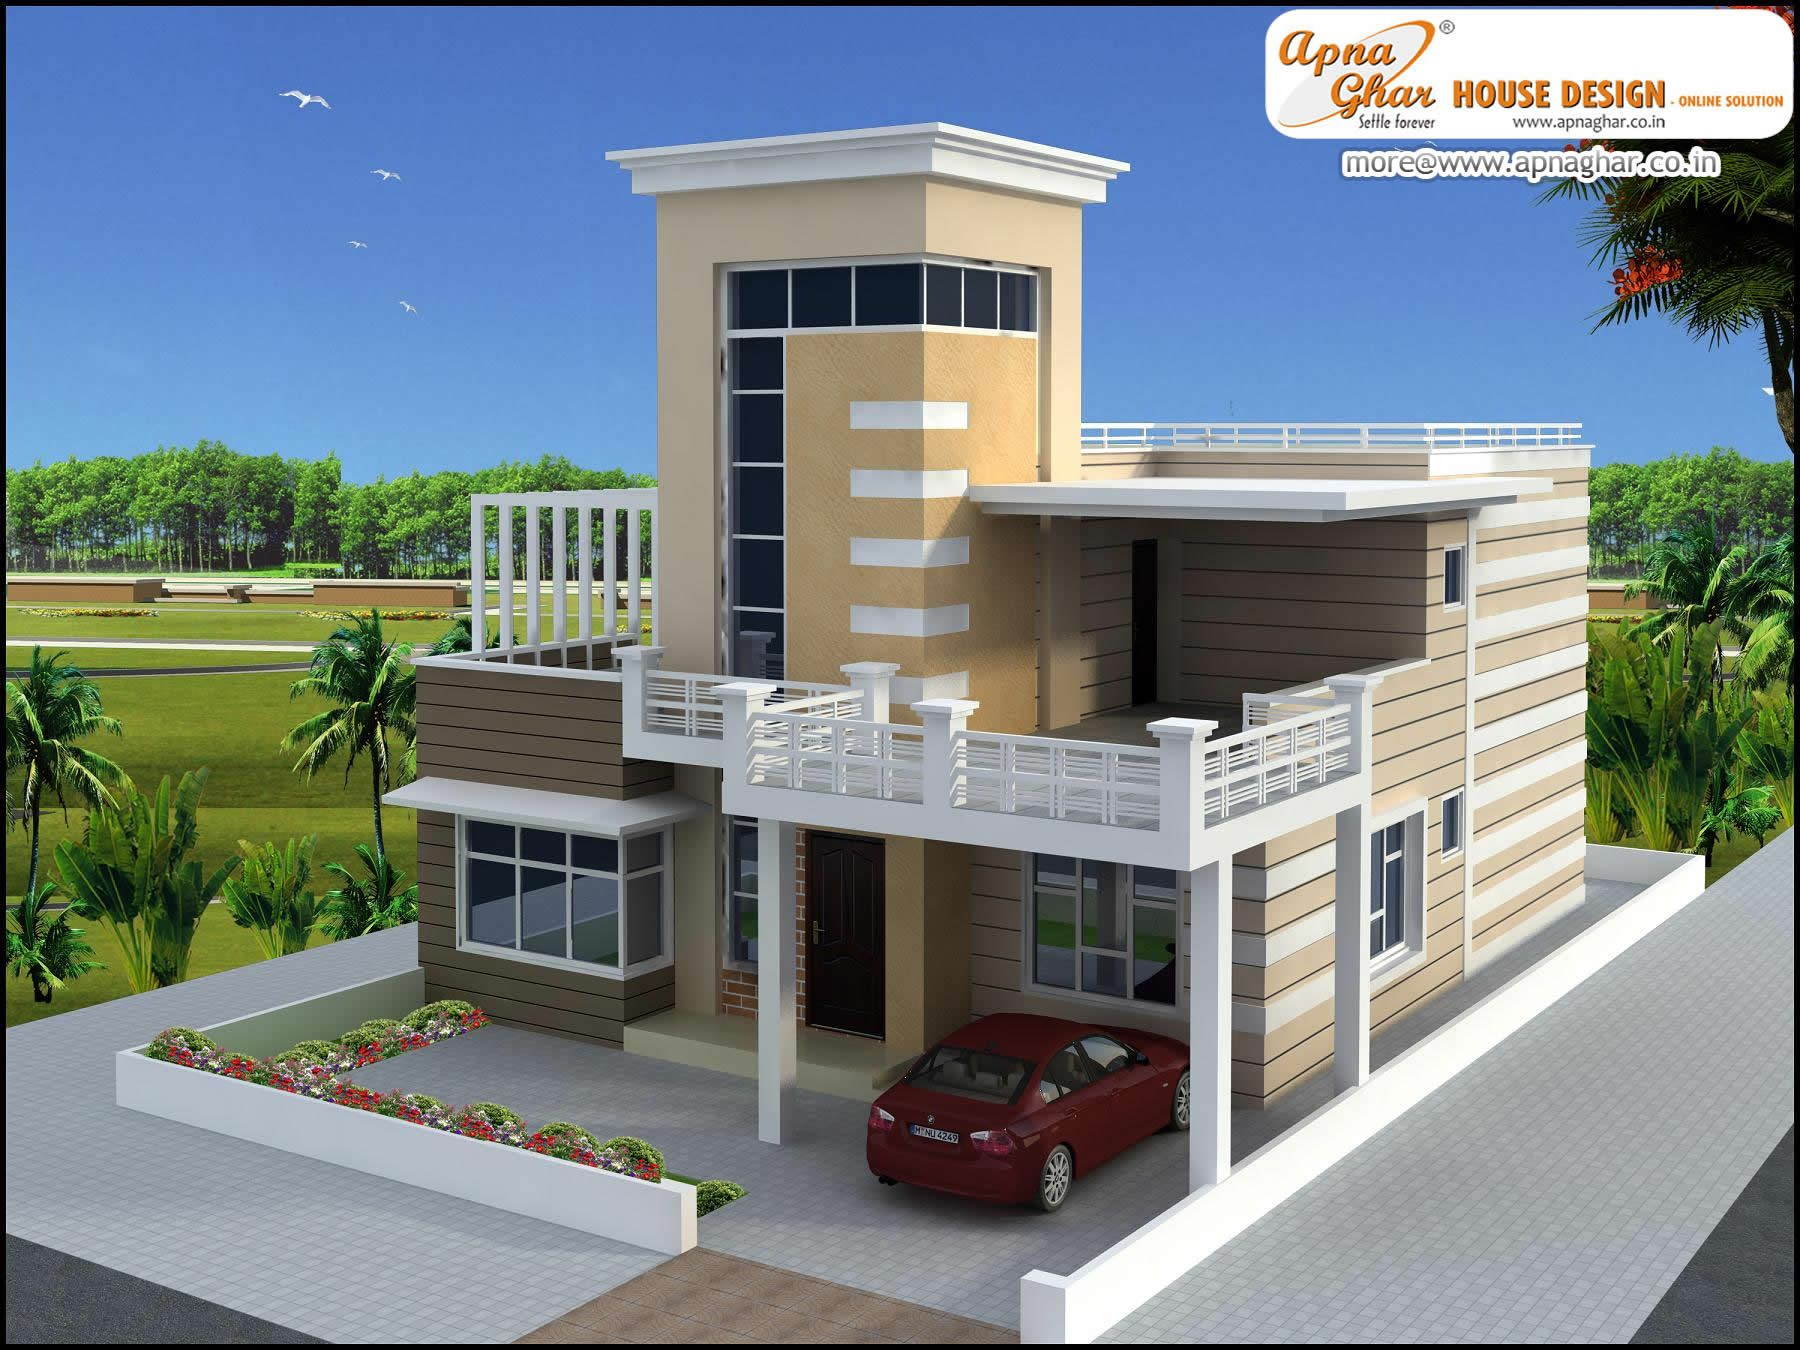 Luxury duplex 2 floors house design area 252m2 21m x for Bangladesh village house design